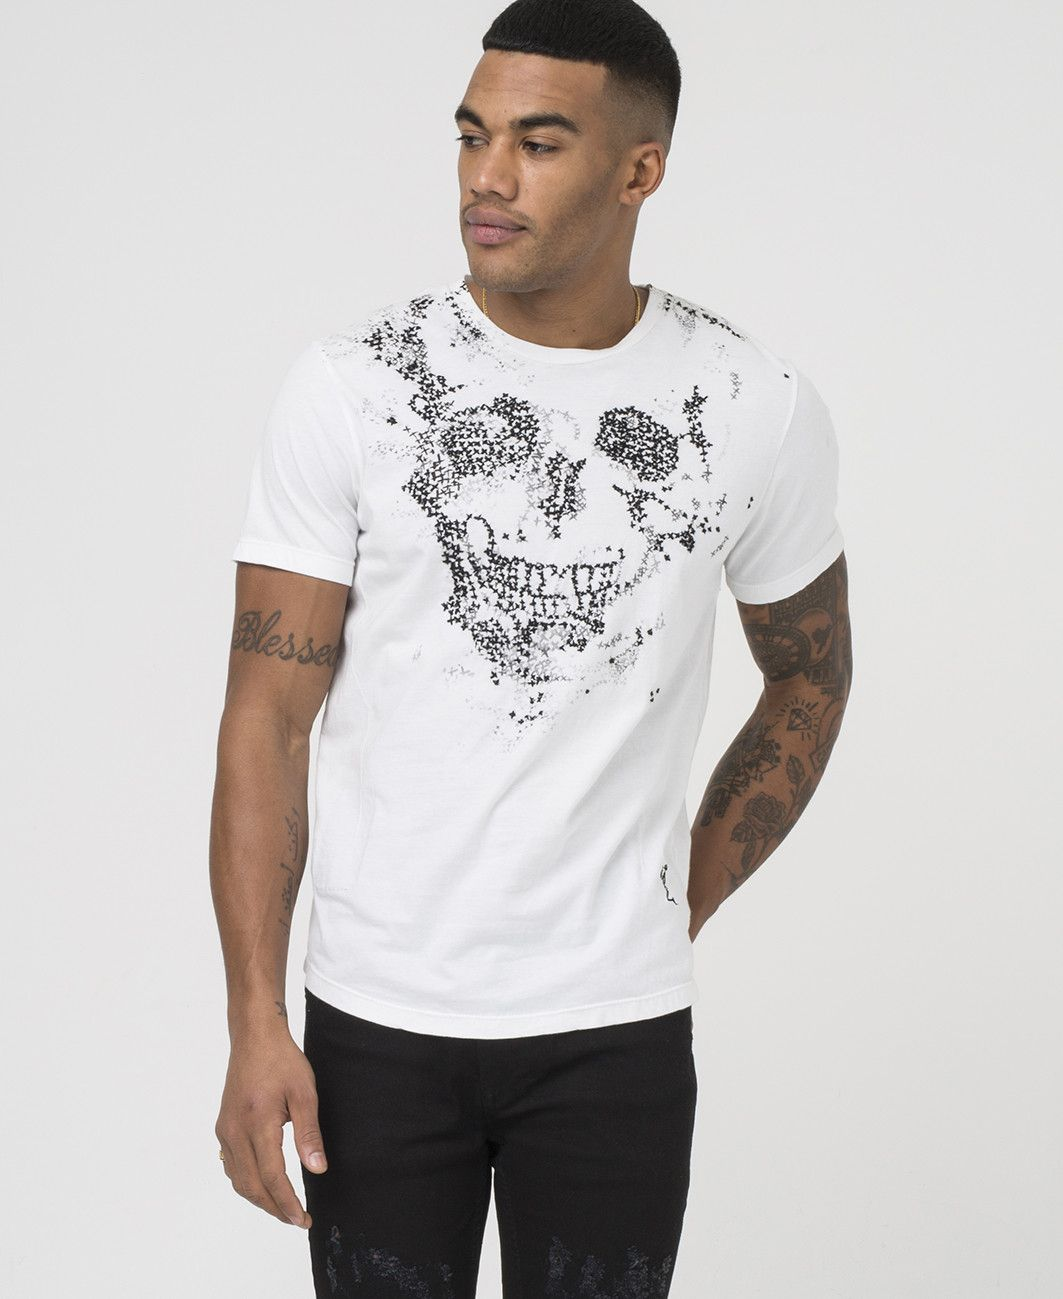 Crew neck tee with hand embroidered stitching detail on front chest,  contrast skeleton branding at hem, and curved hem.